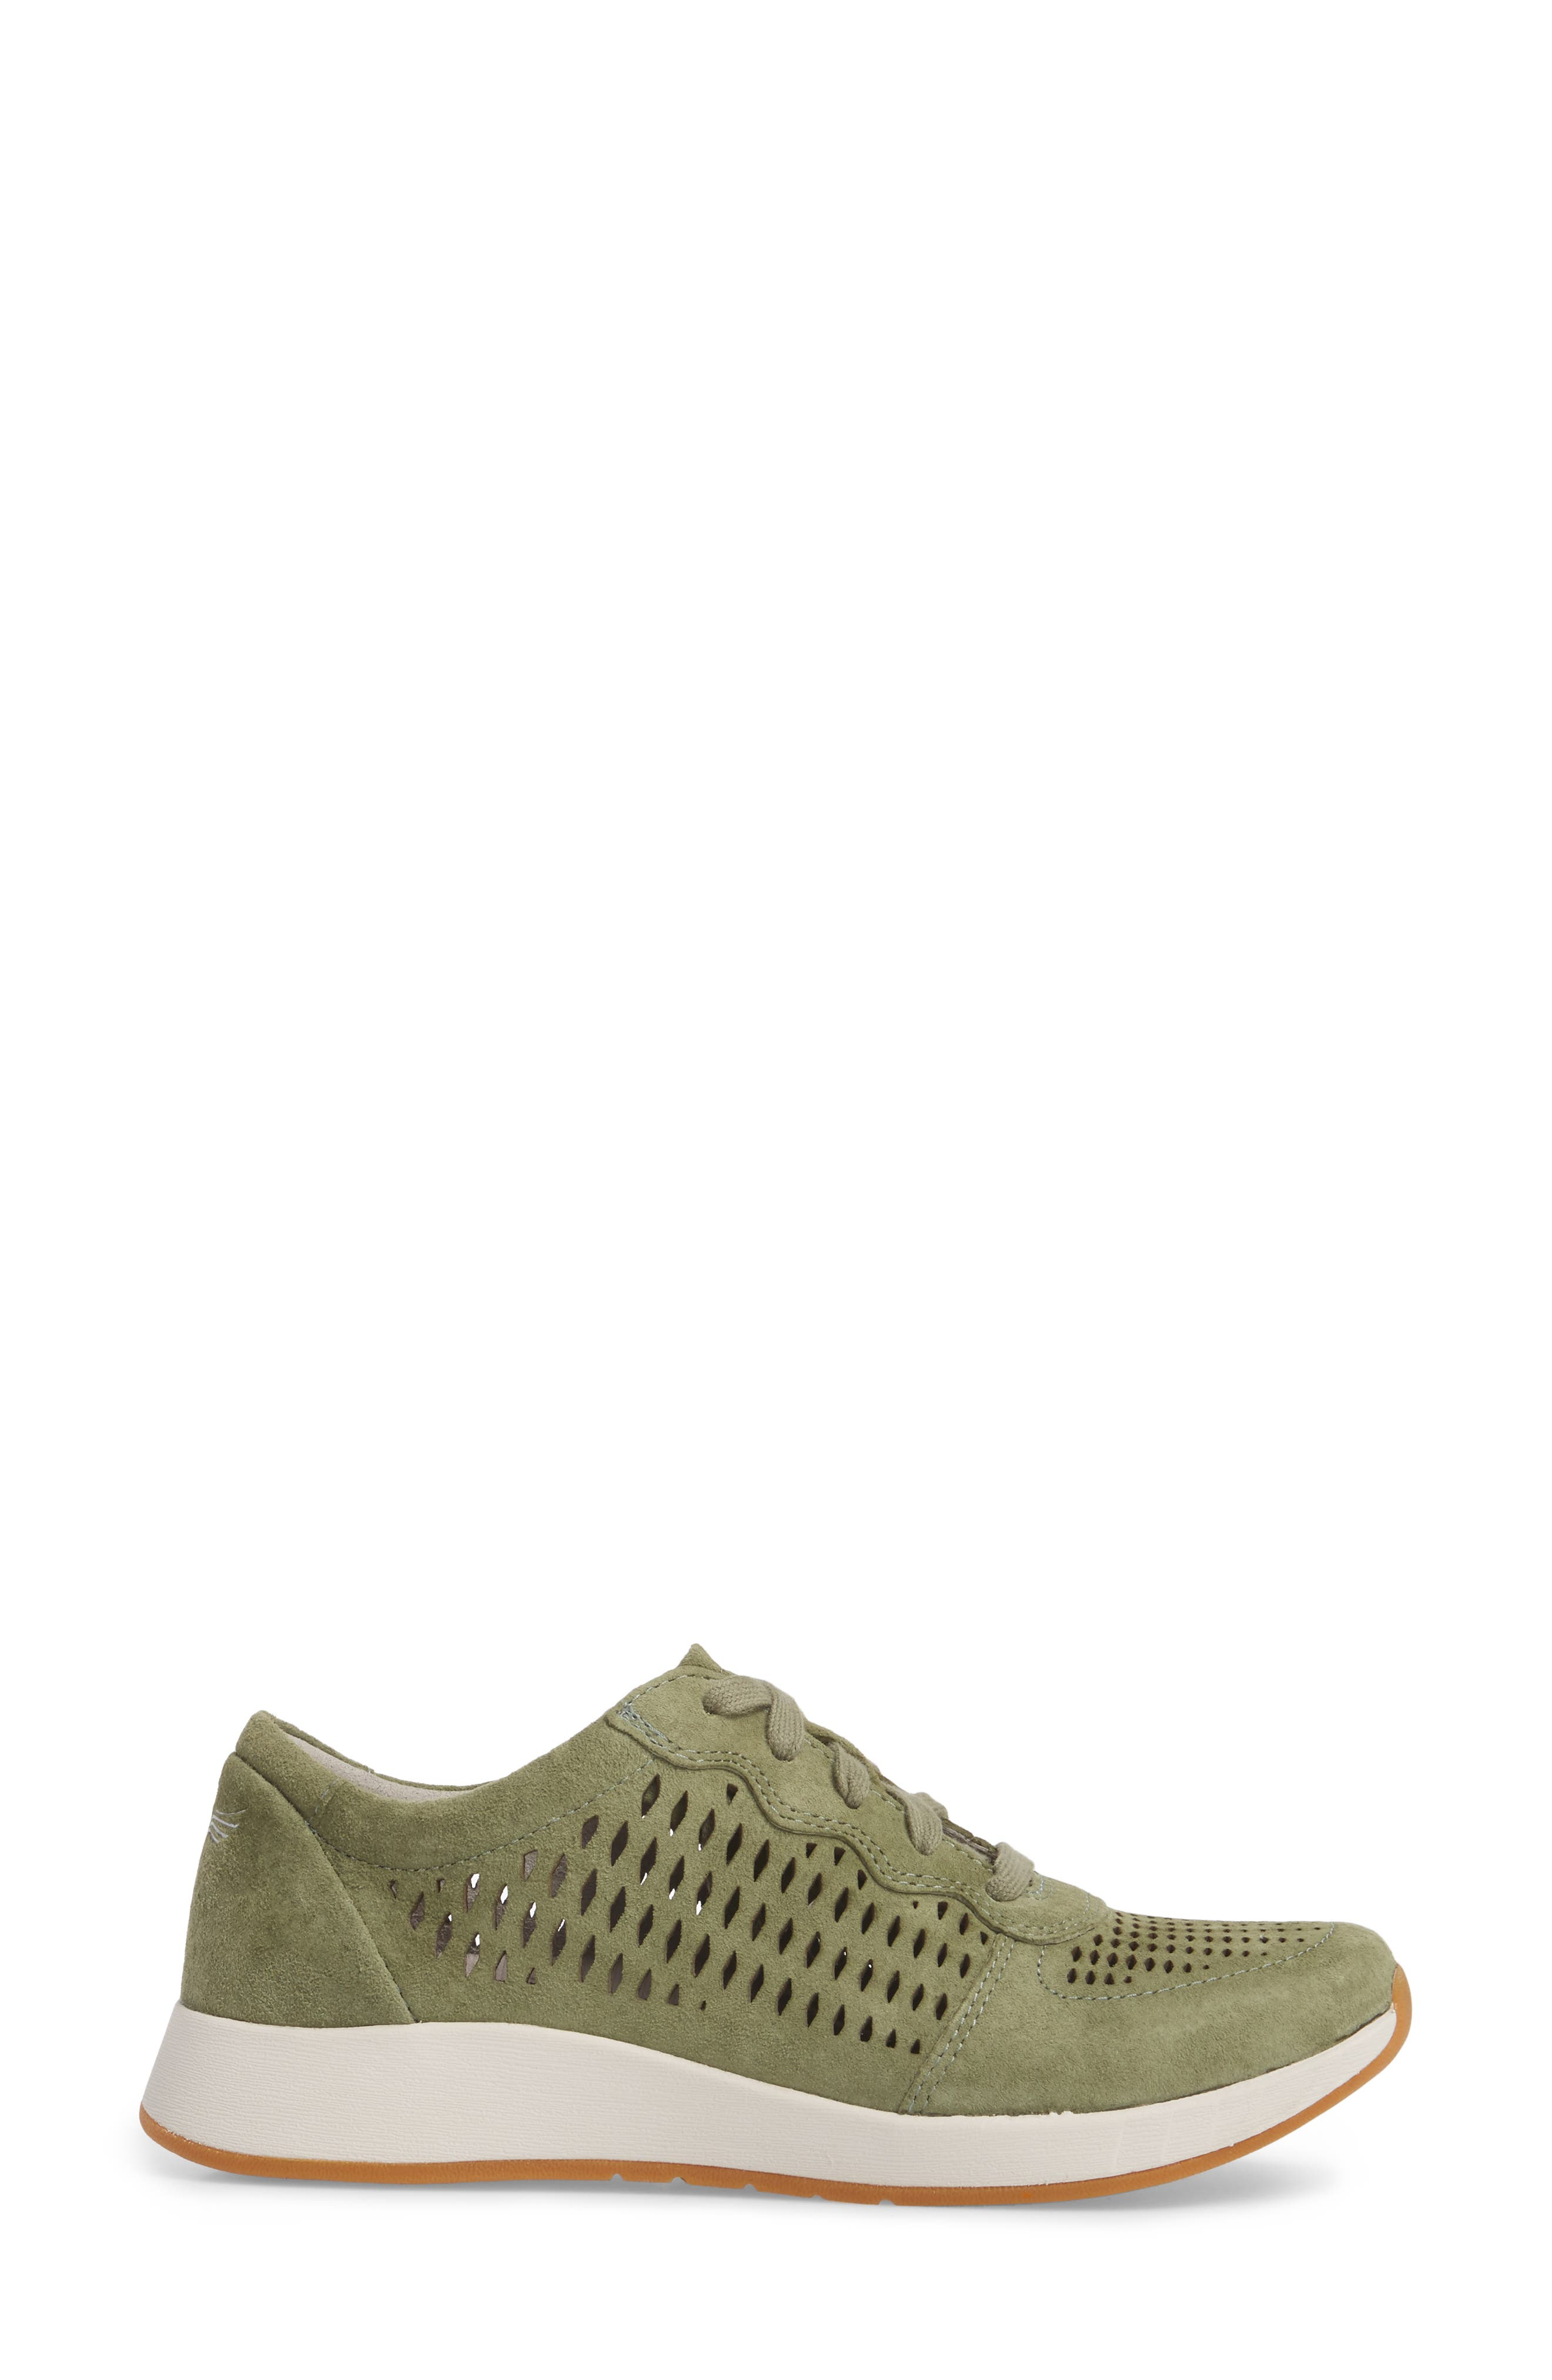 Charlie Perforated Sneaker,                             Alternate thumbnail 3, color,                             309